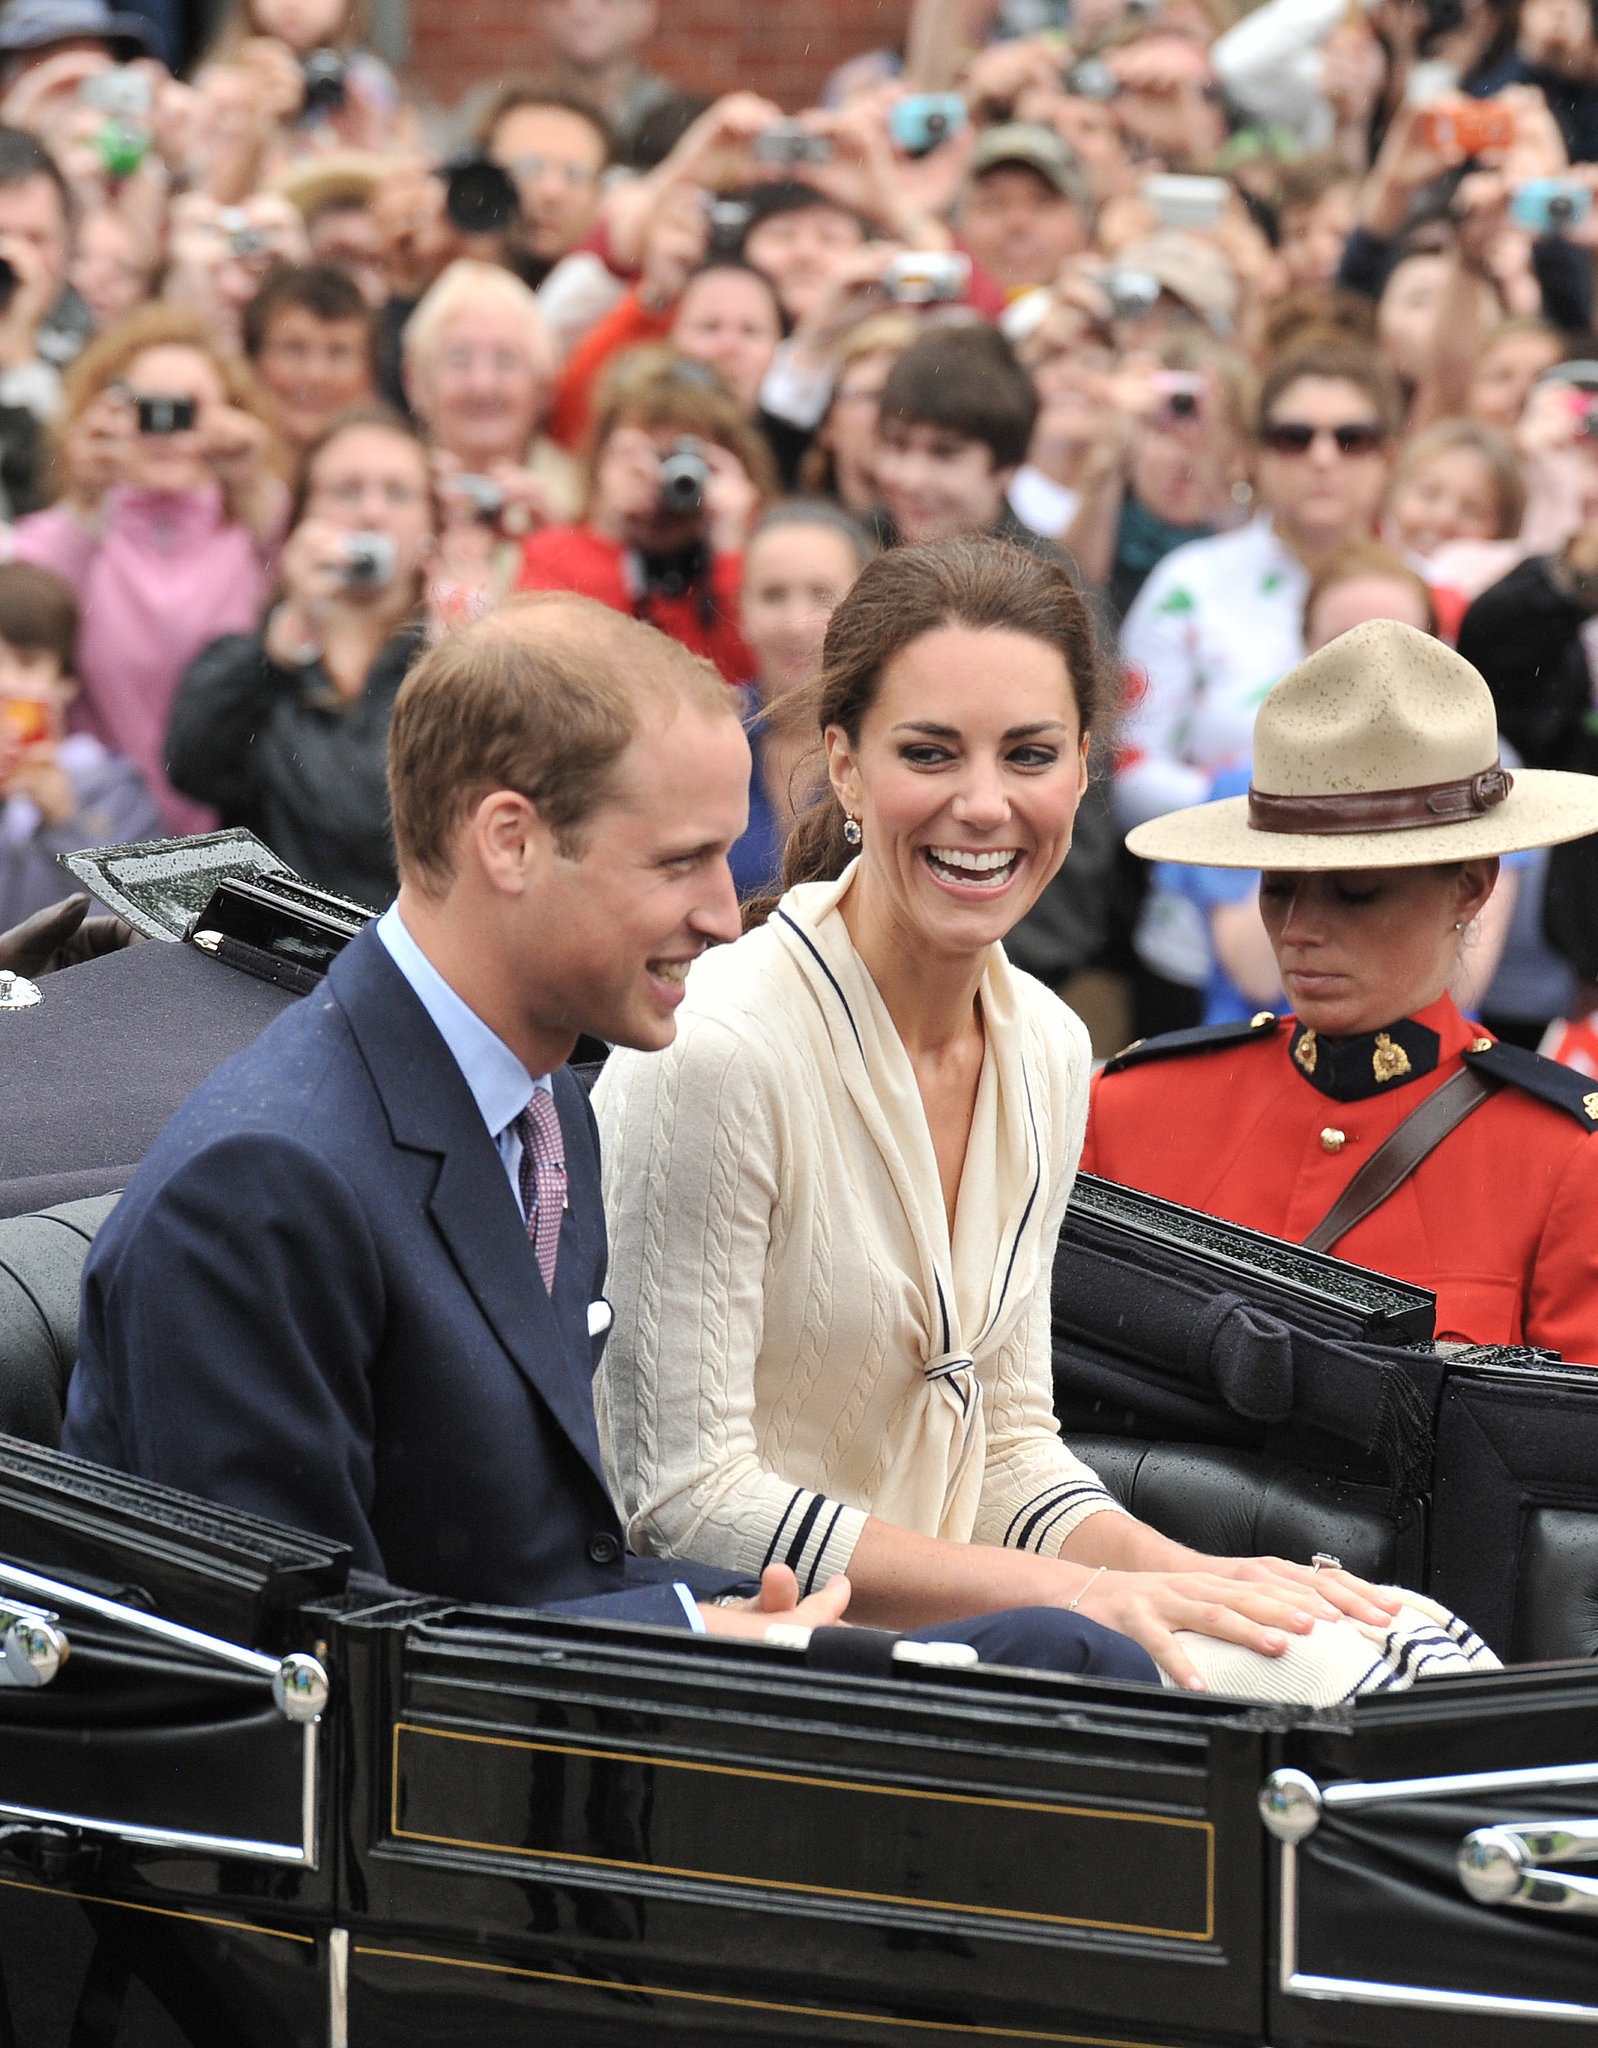 Kate Middleton and Prince William shared a laugh on Prince Edward Island in July 2011.